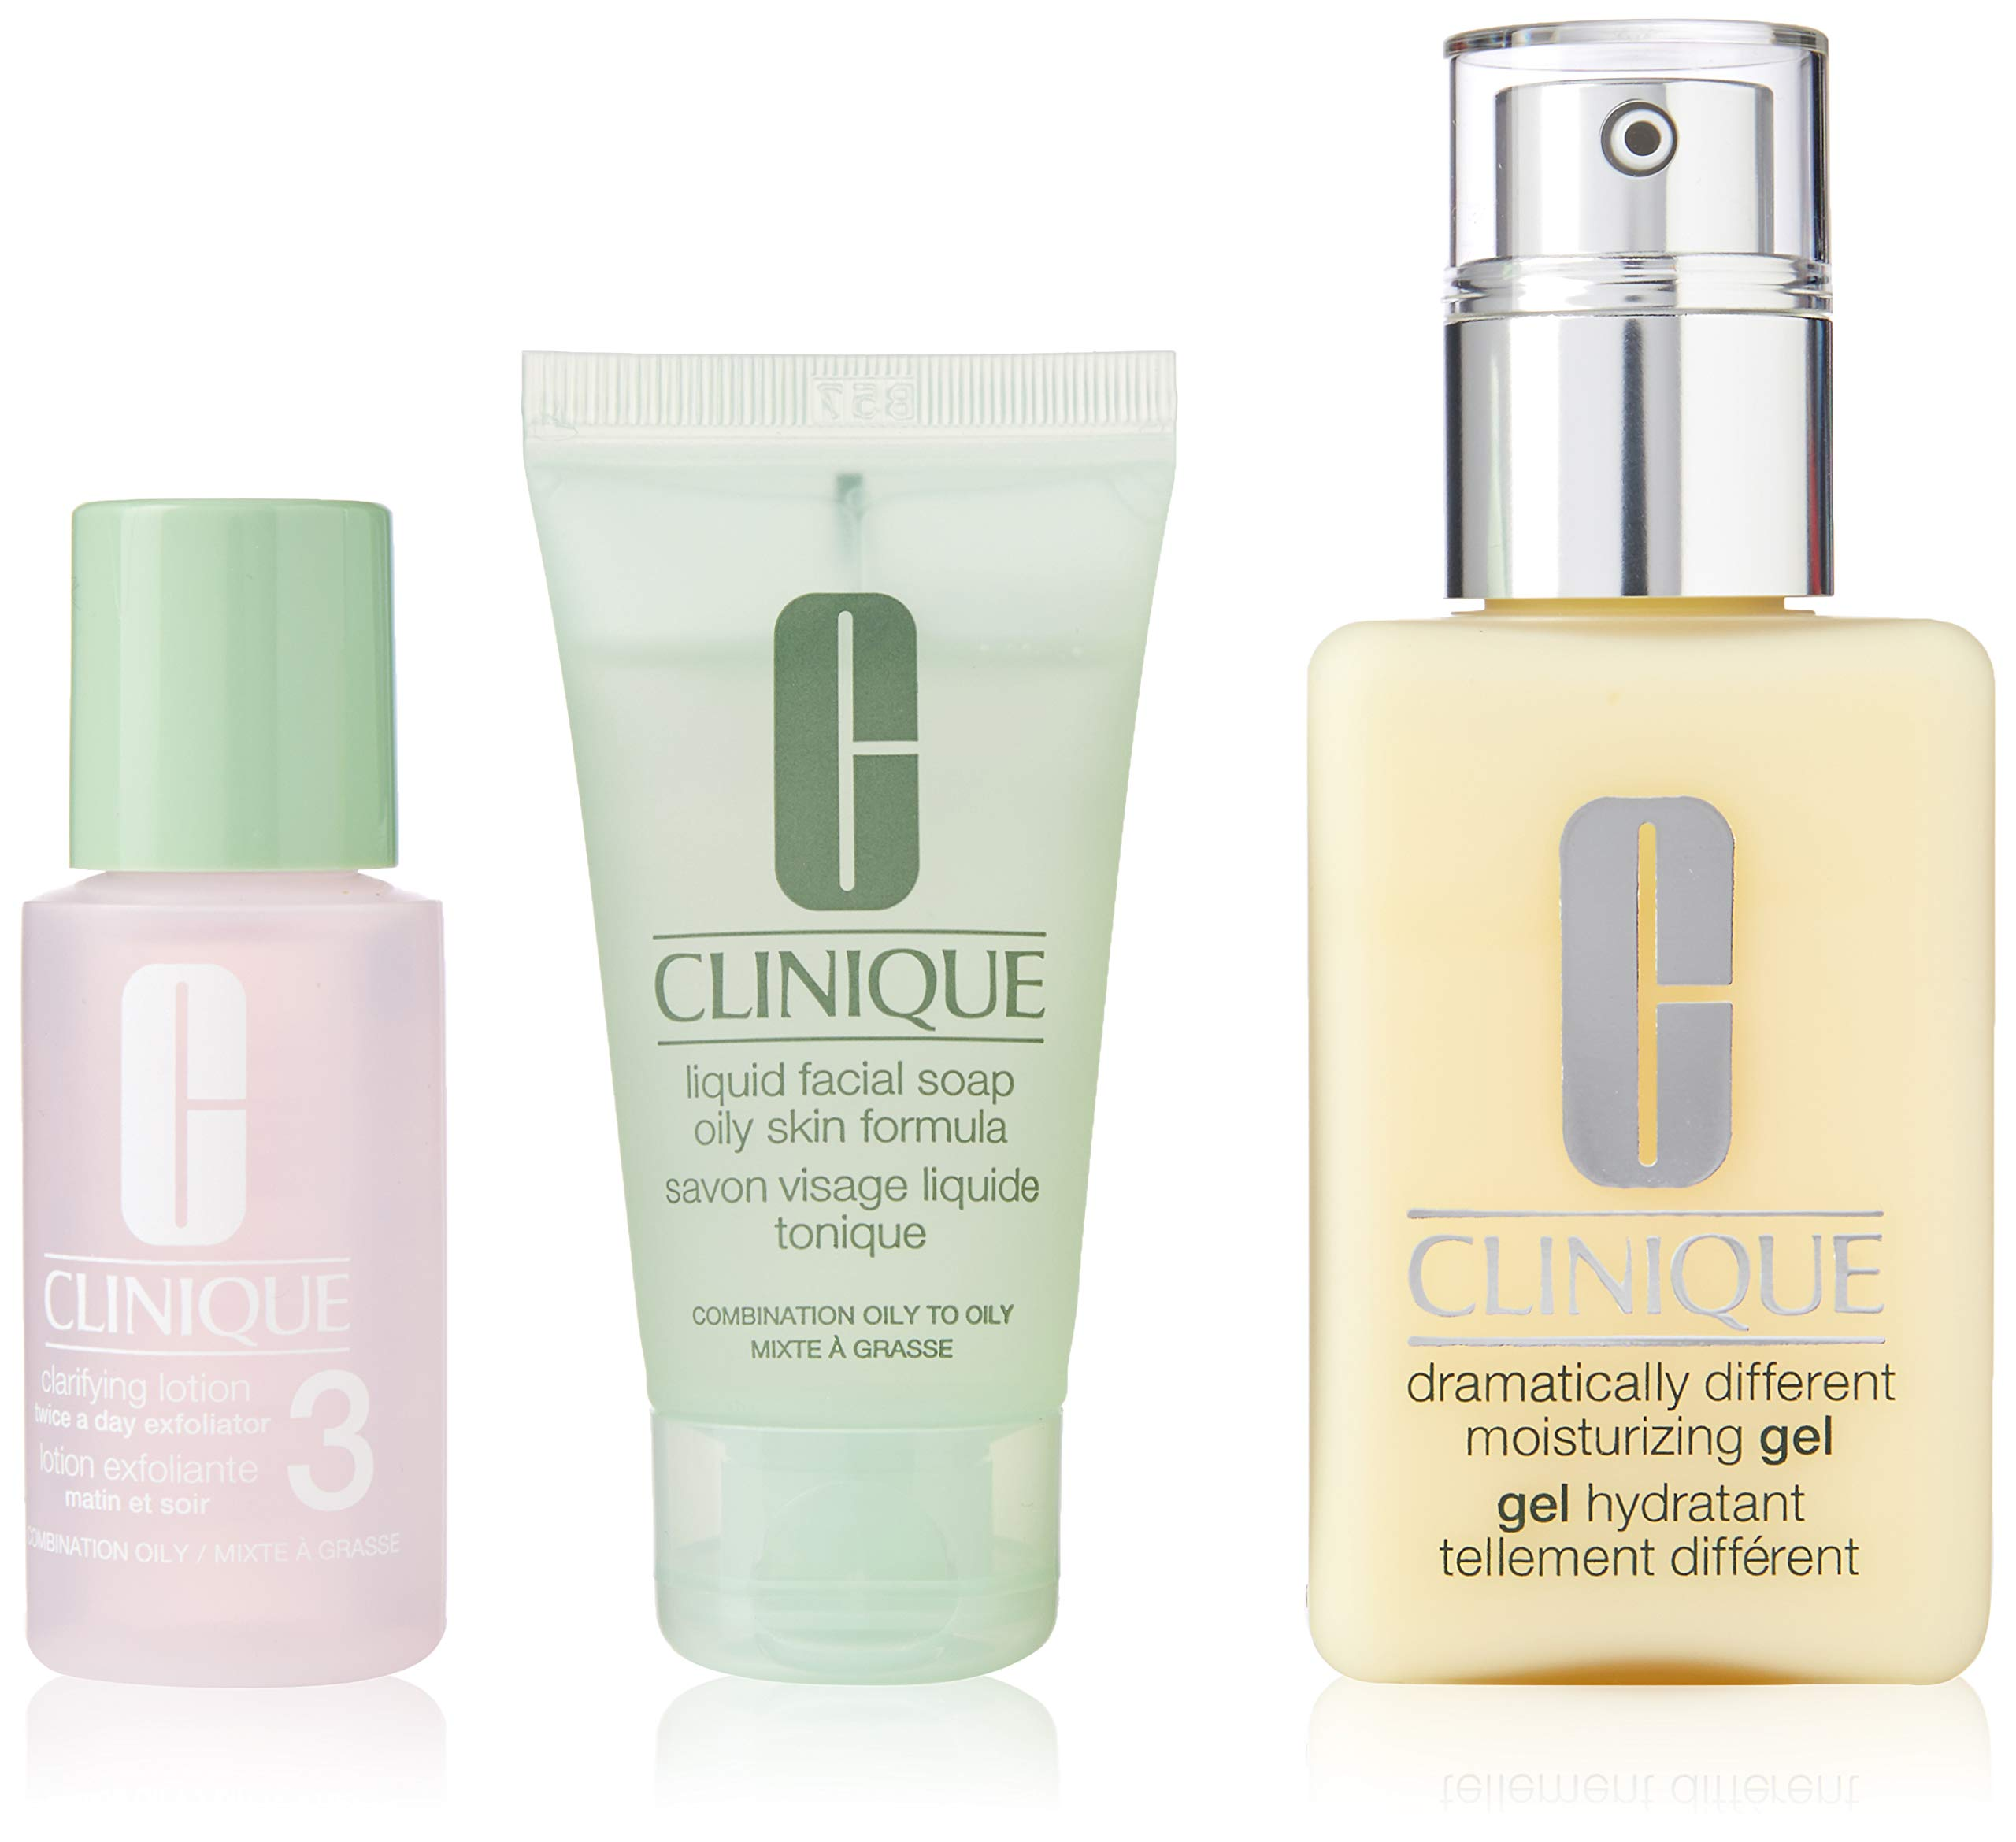 Clinique 3 Piece 3 Step Skin Care Introduction Kit for Unisex, Combination Oily Skin Type by Clinique